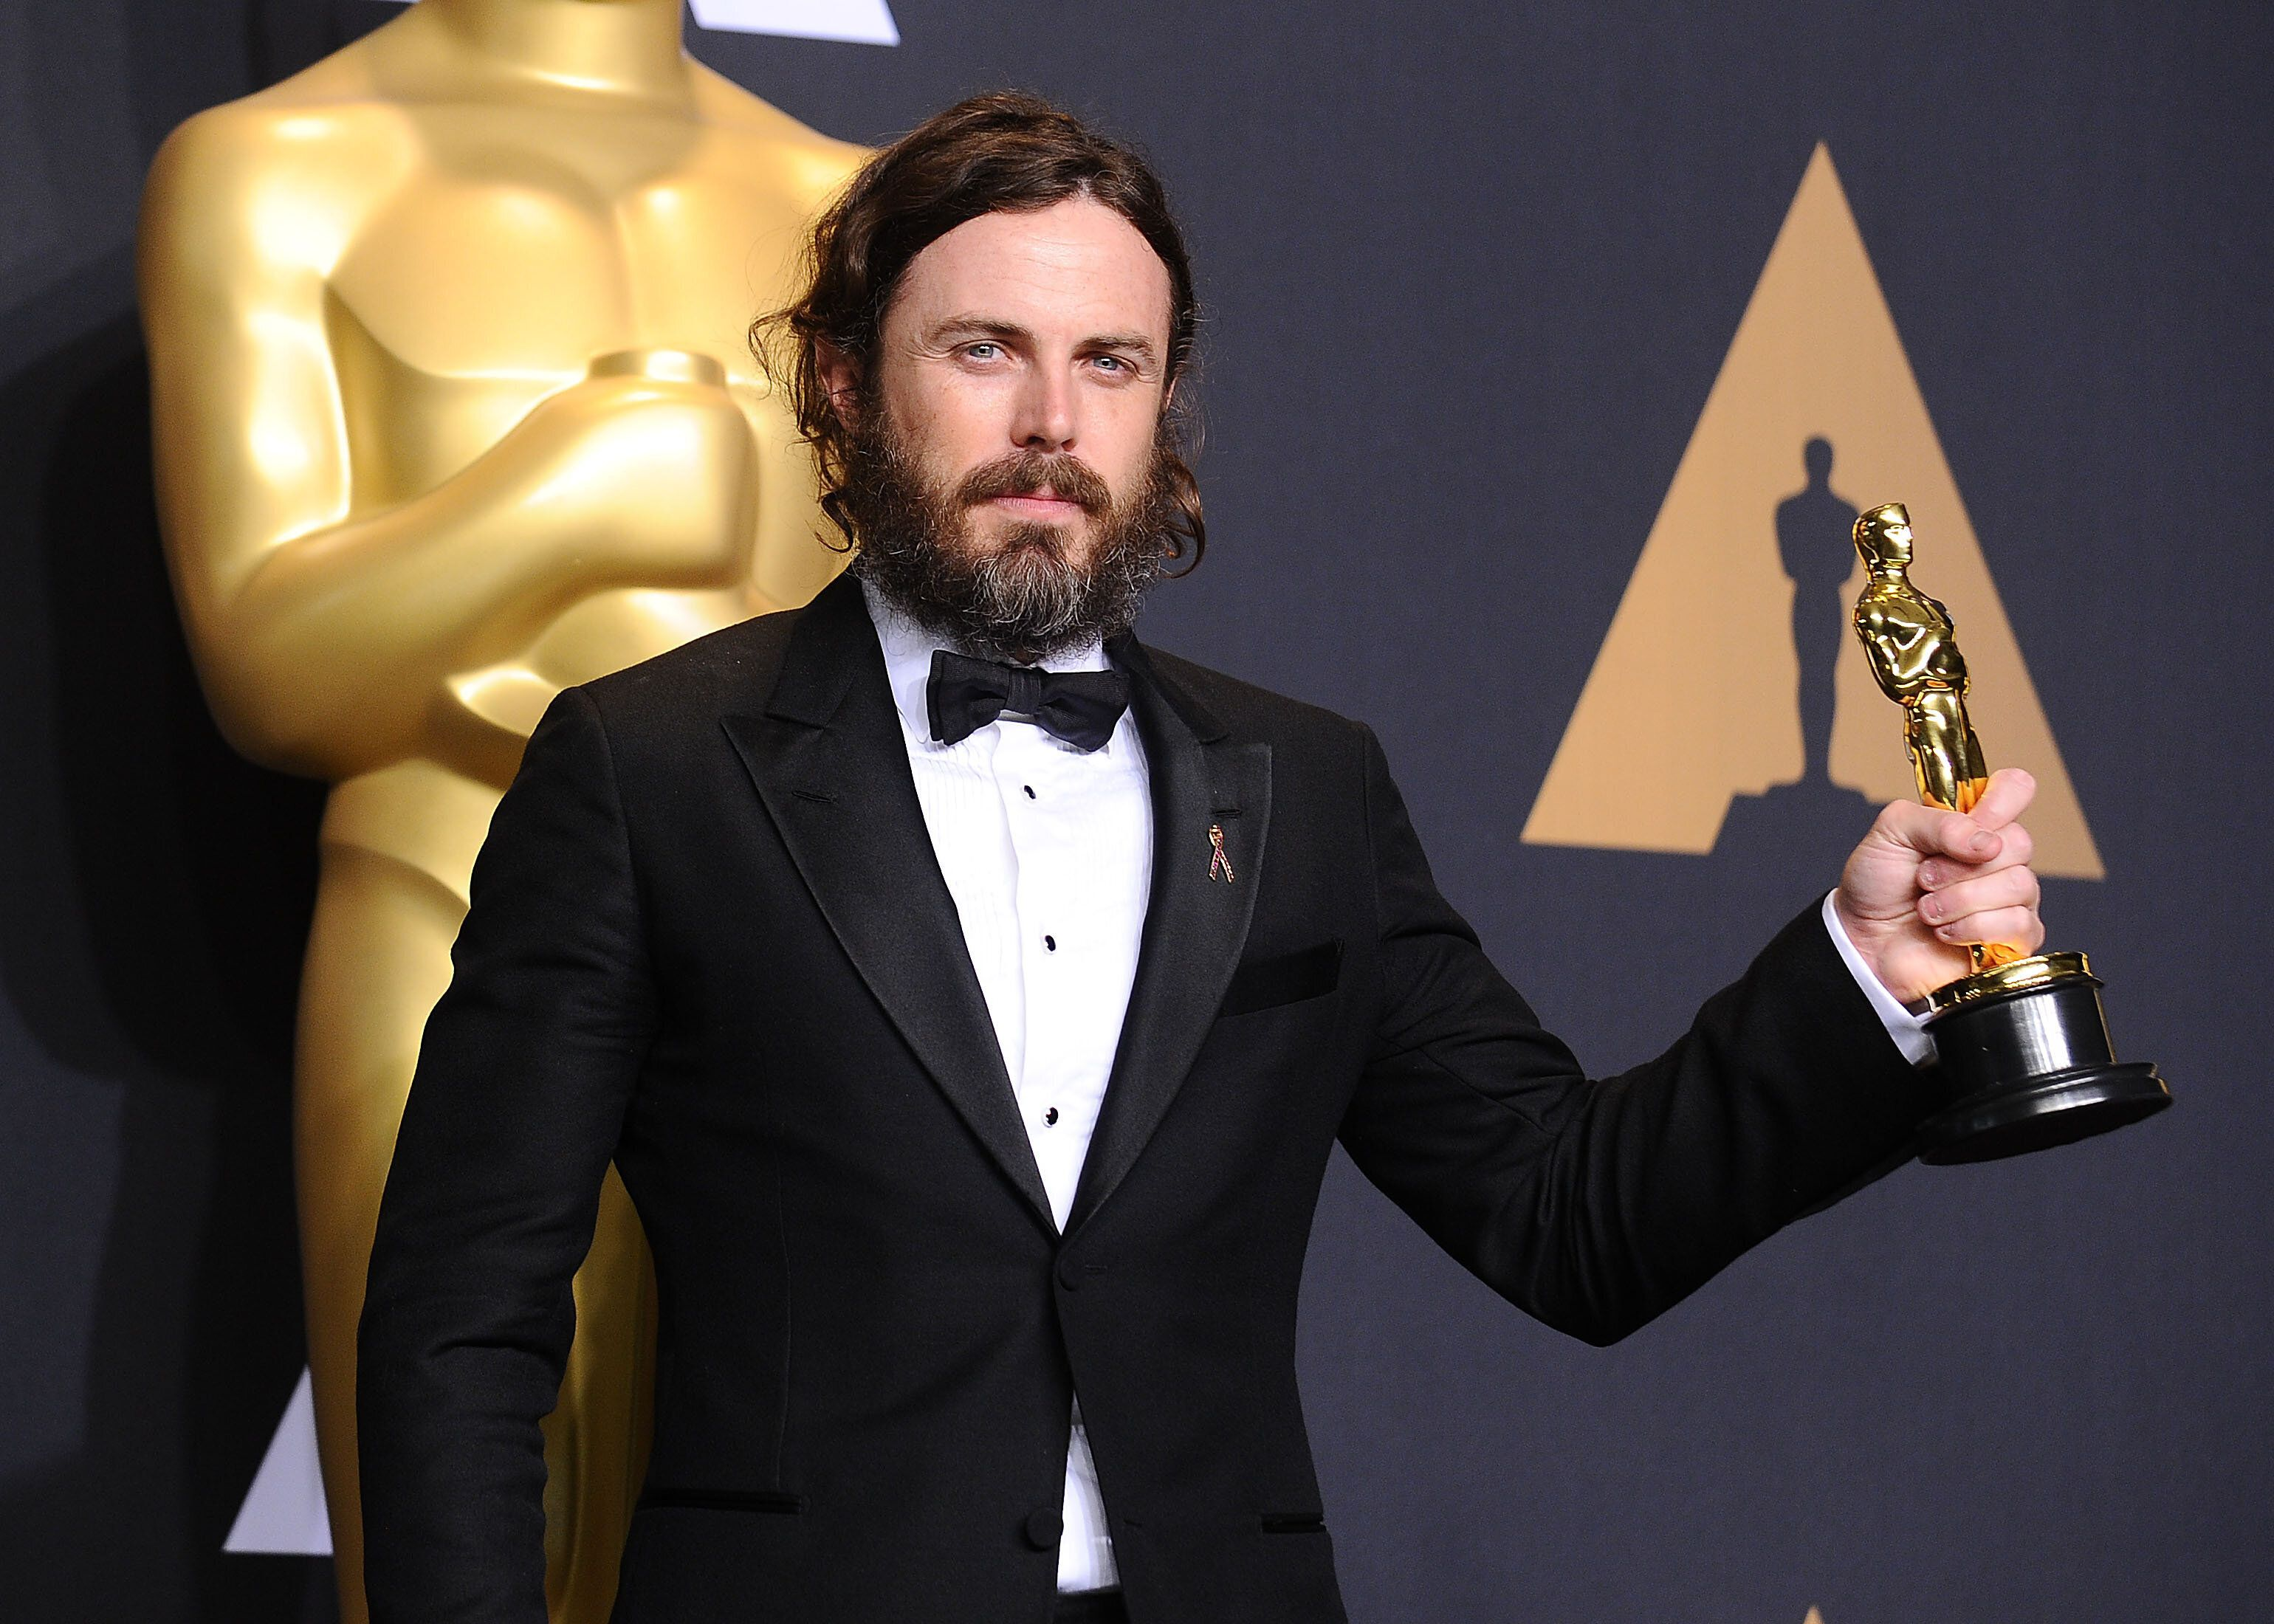 Casey Affleck took home the trophy for Best Actor at the 89th annual Academy Awards in 2017.